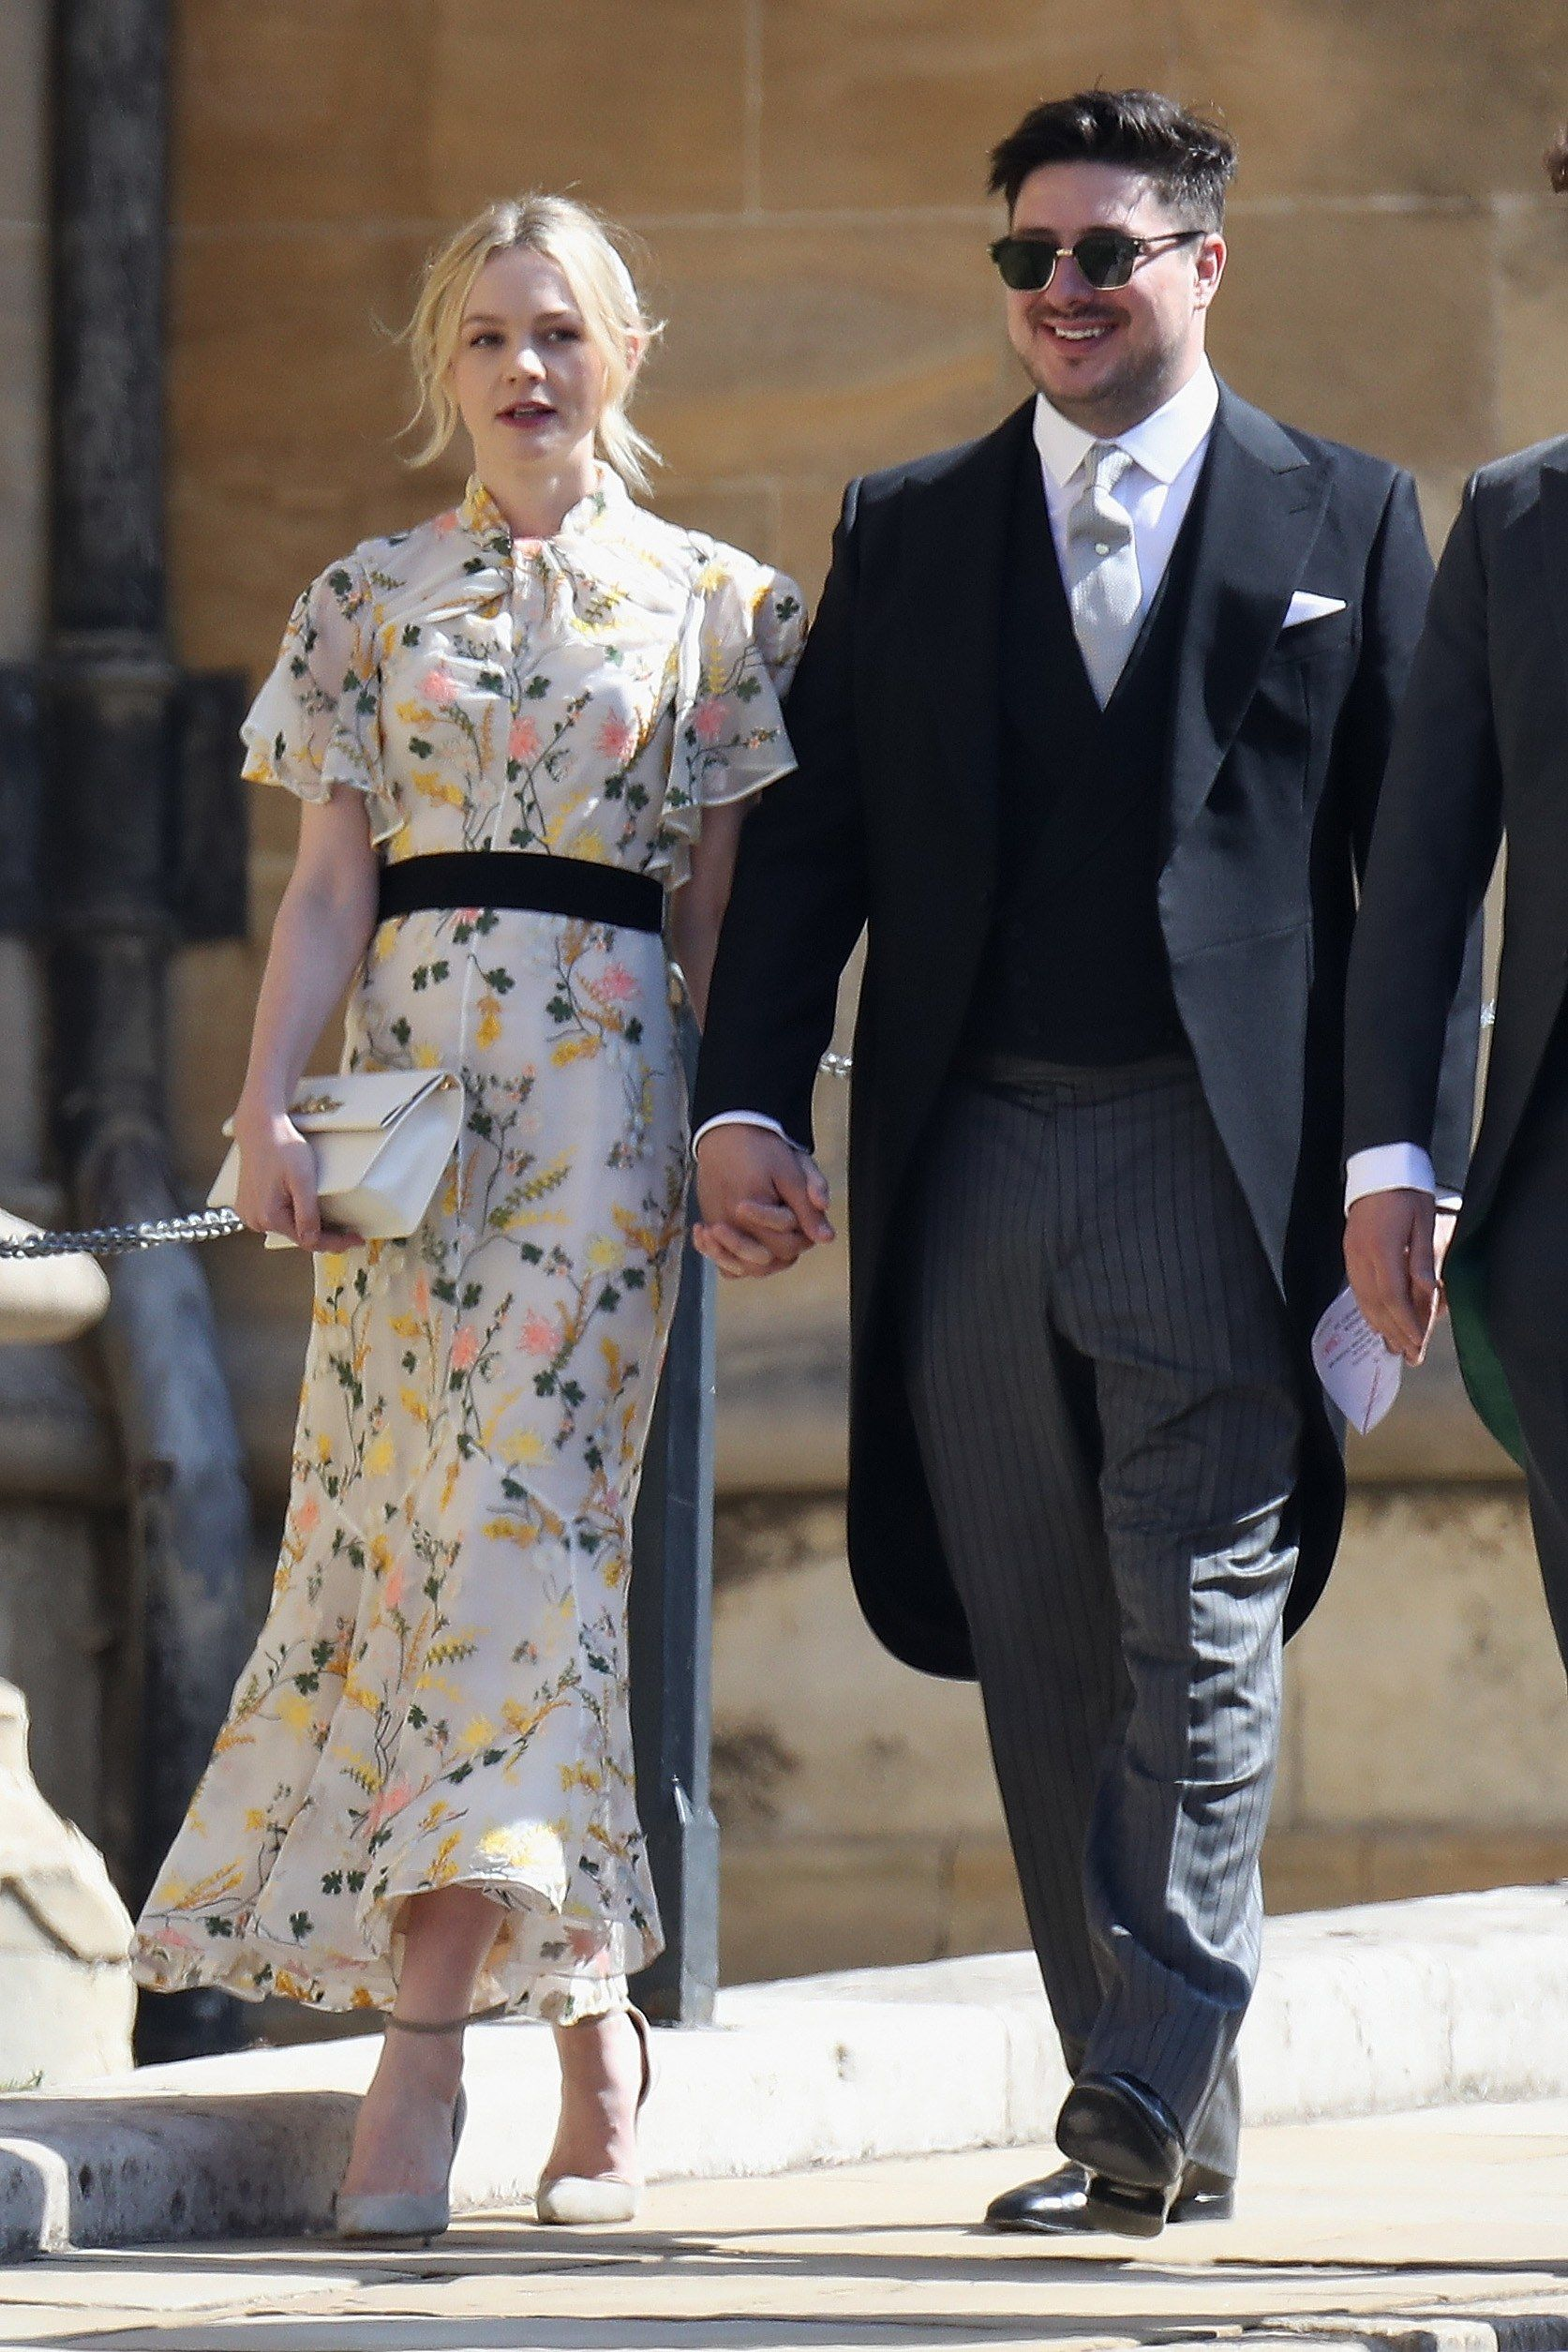 10 Best Dressed Week Of May 21 2018 Royal Wedding Guests Outfits Wedding Guest Looks Celebrity Style